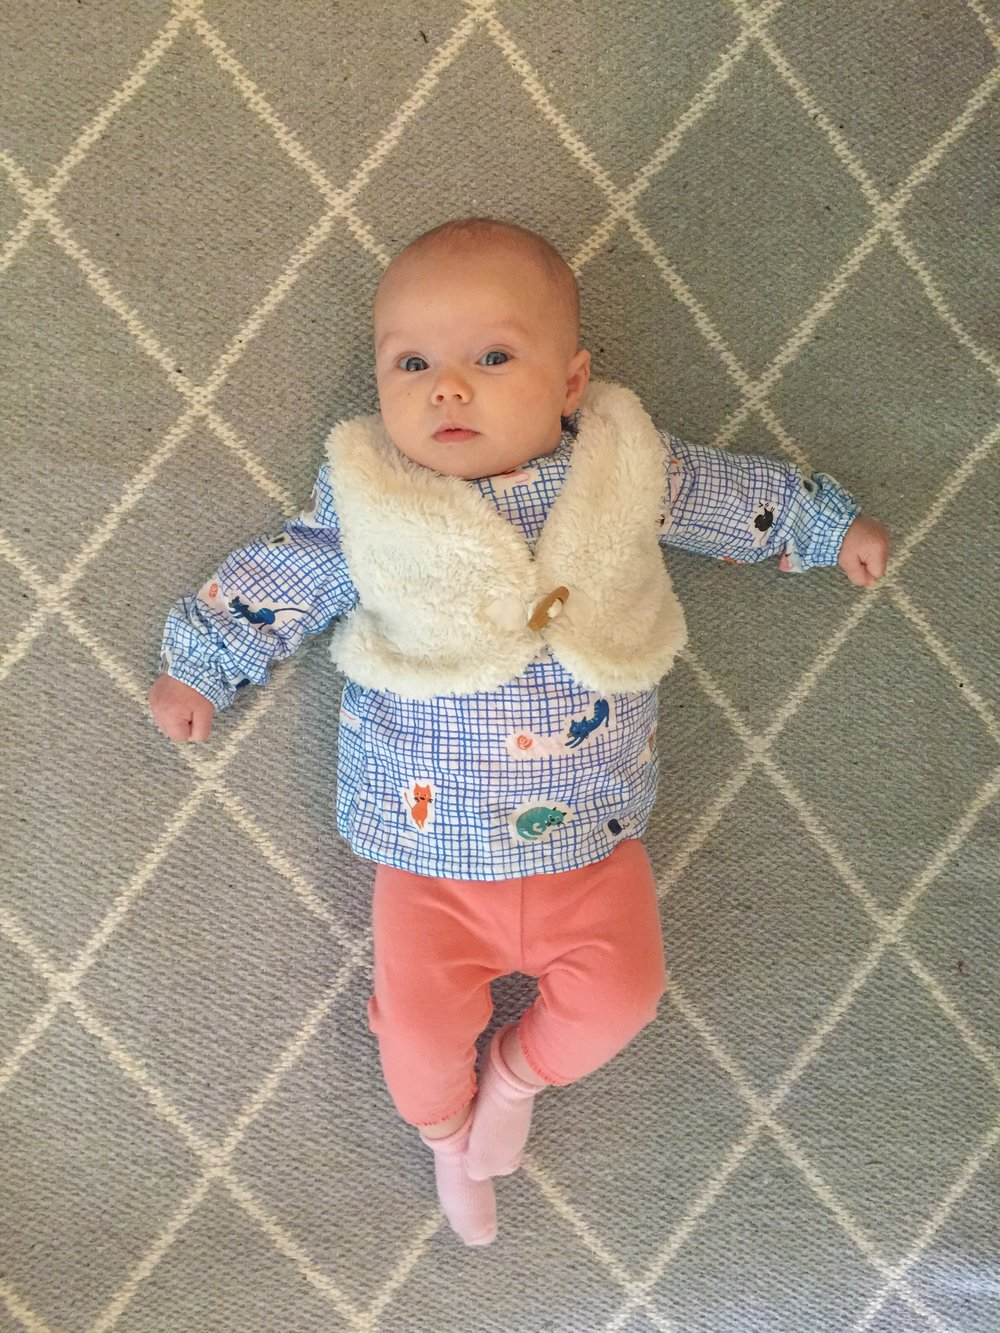 Amelia sporting a second-hand outfit.